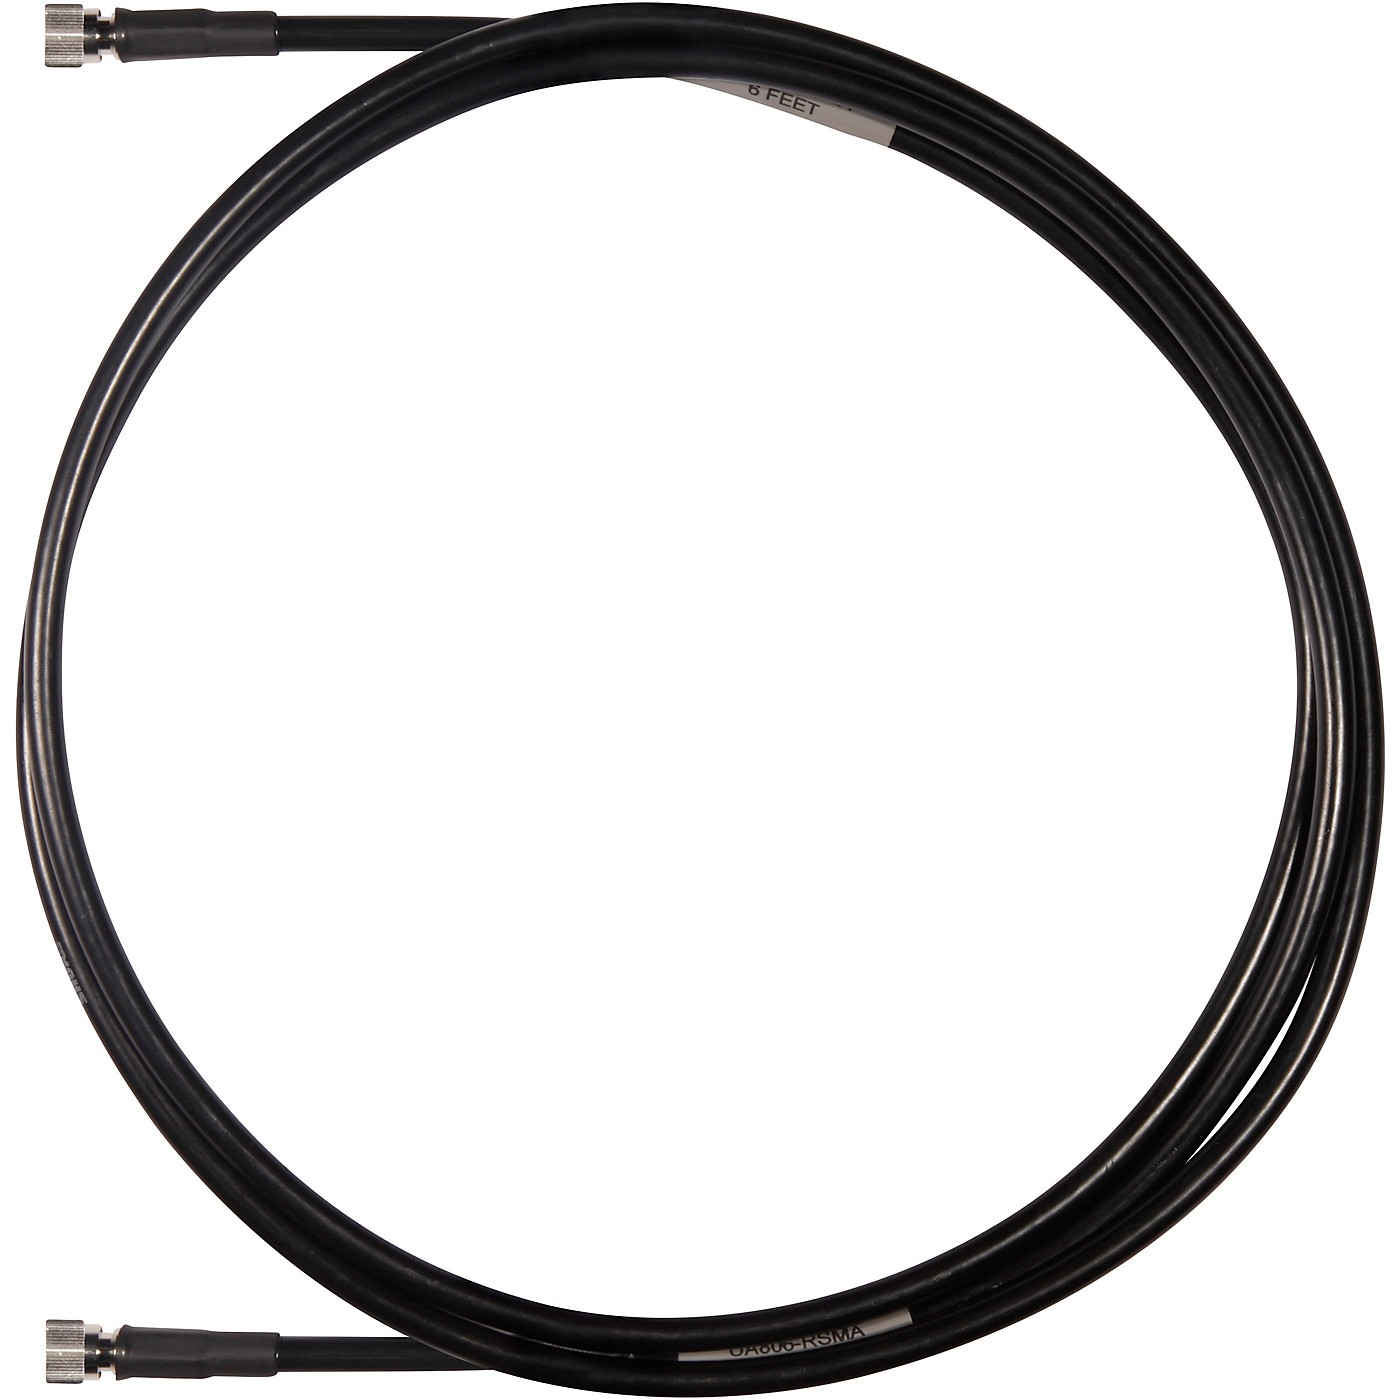 Shure UA806-RSMA 6 ft. Reverse SMA Cable for GLX-D Advanced Digital Wireless Systems thumbnail